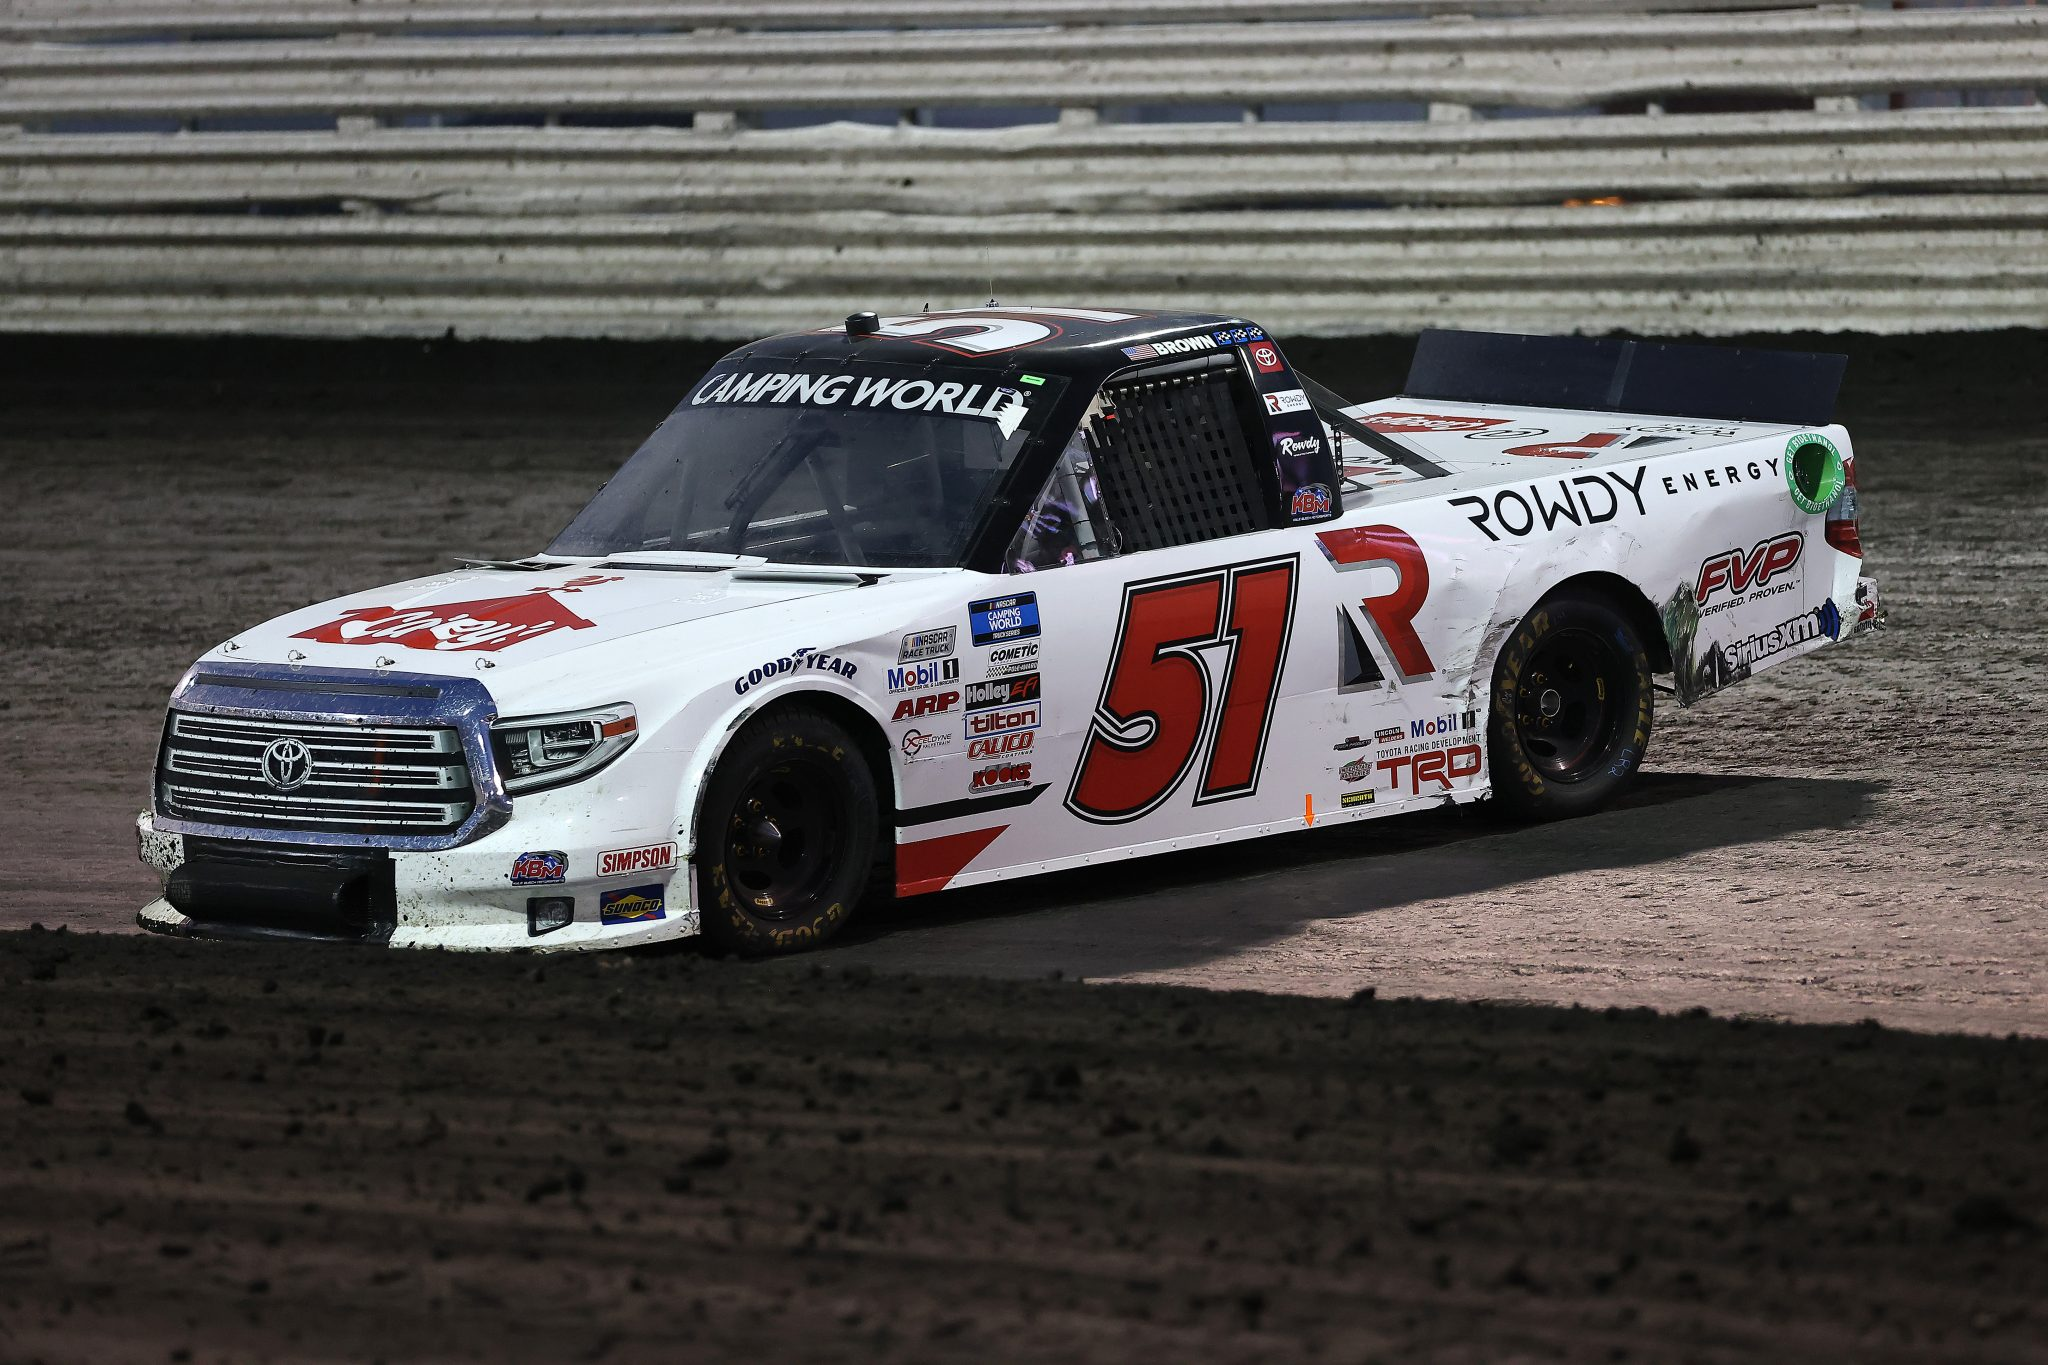 KNOXVILLE, IOWA - JULY 09: Brian Brown, driver of the #51 Casey's/Rowdy Energy Toyota, spins during the NASCAR Camping World Truck Series Corn Belt 150 presented by Premier Chevy Dealers at Knoxville Raceway on July 09, 2021 in Knoxville, Iowa. (Photo by James Gilbert/Getty Images) | Getty Images